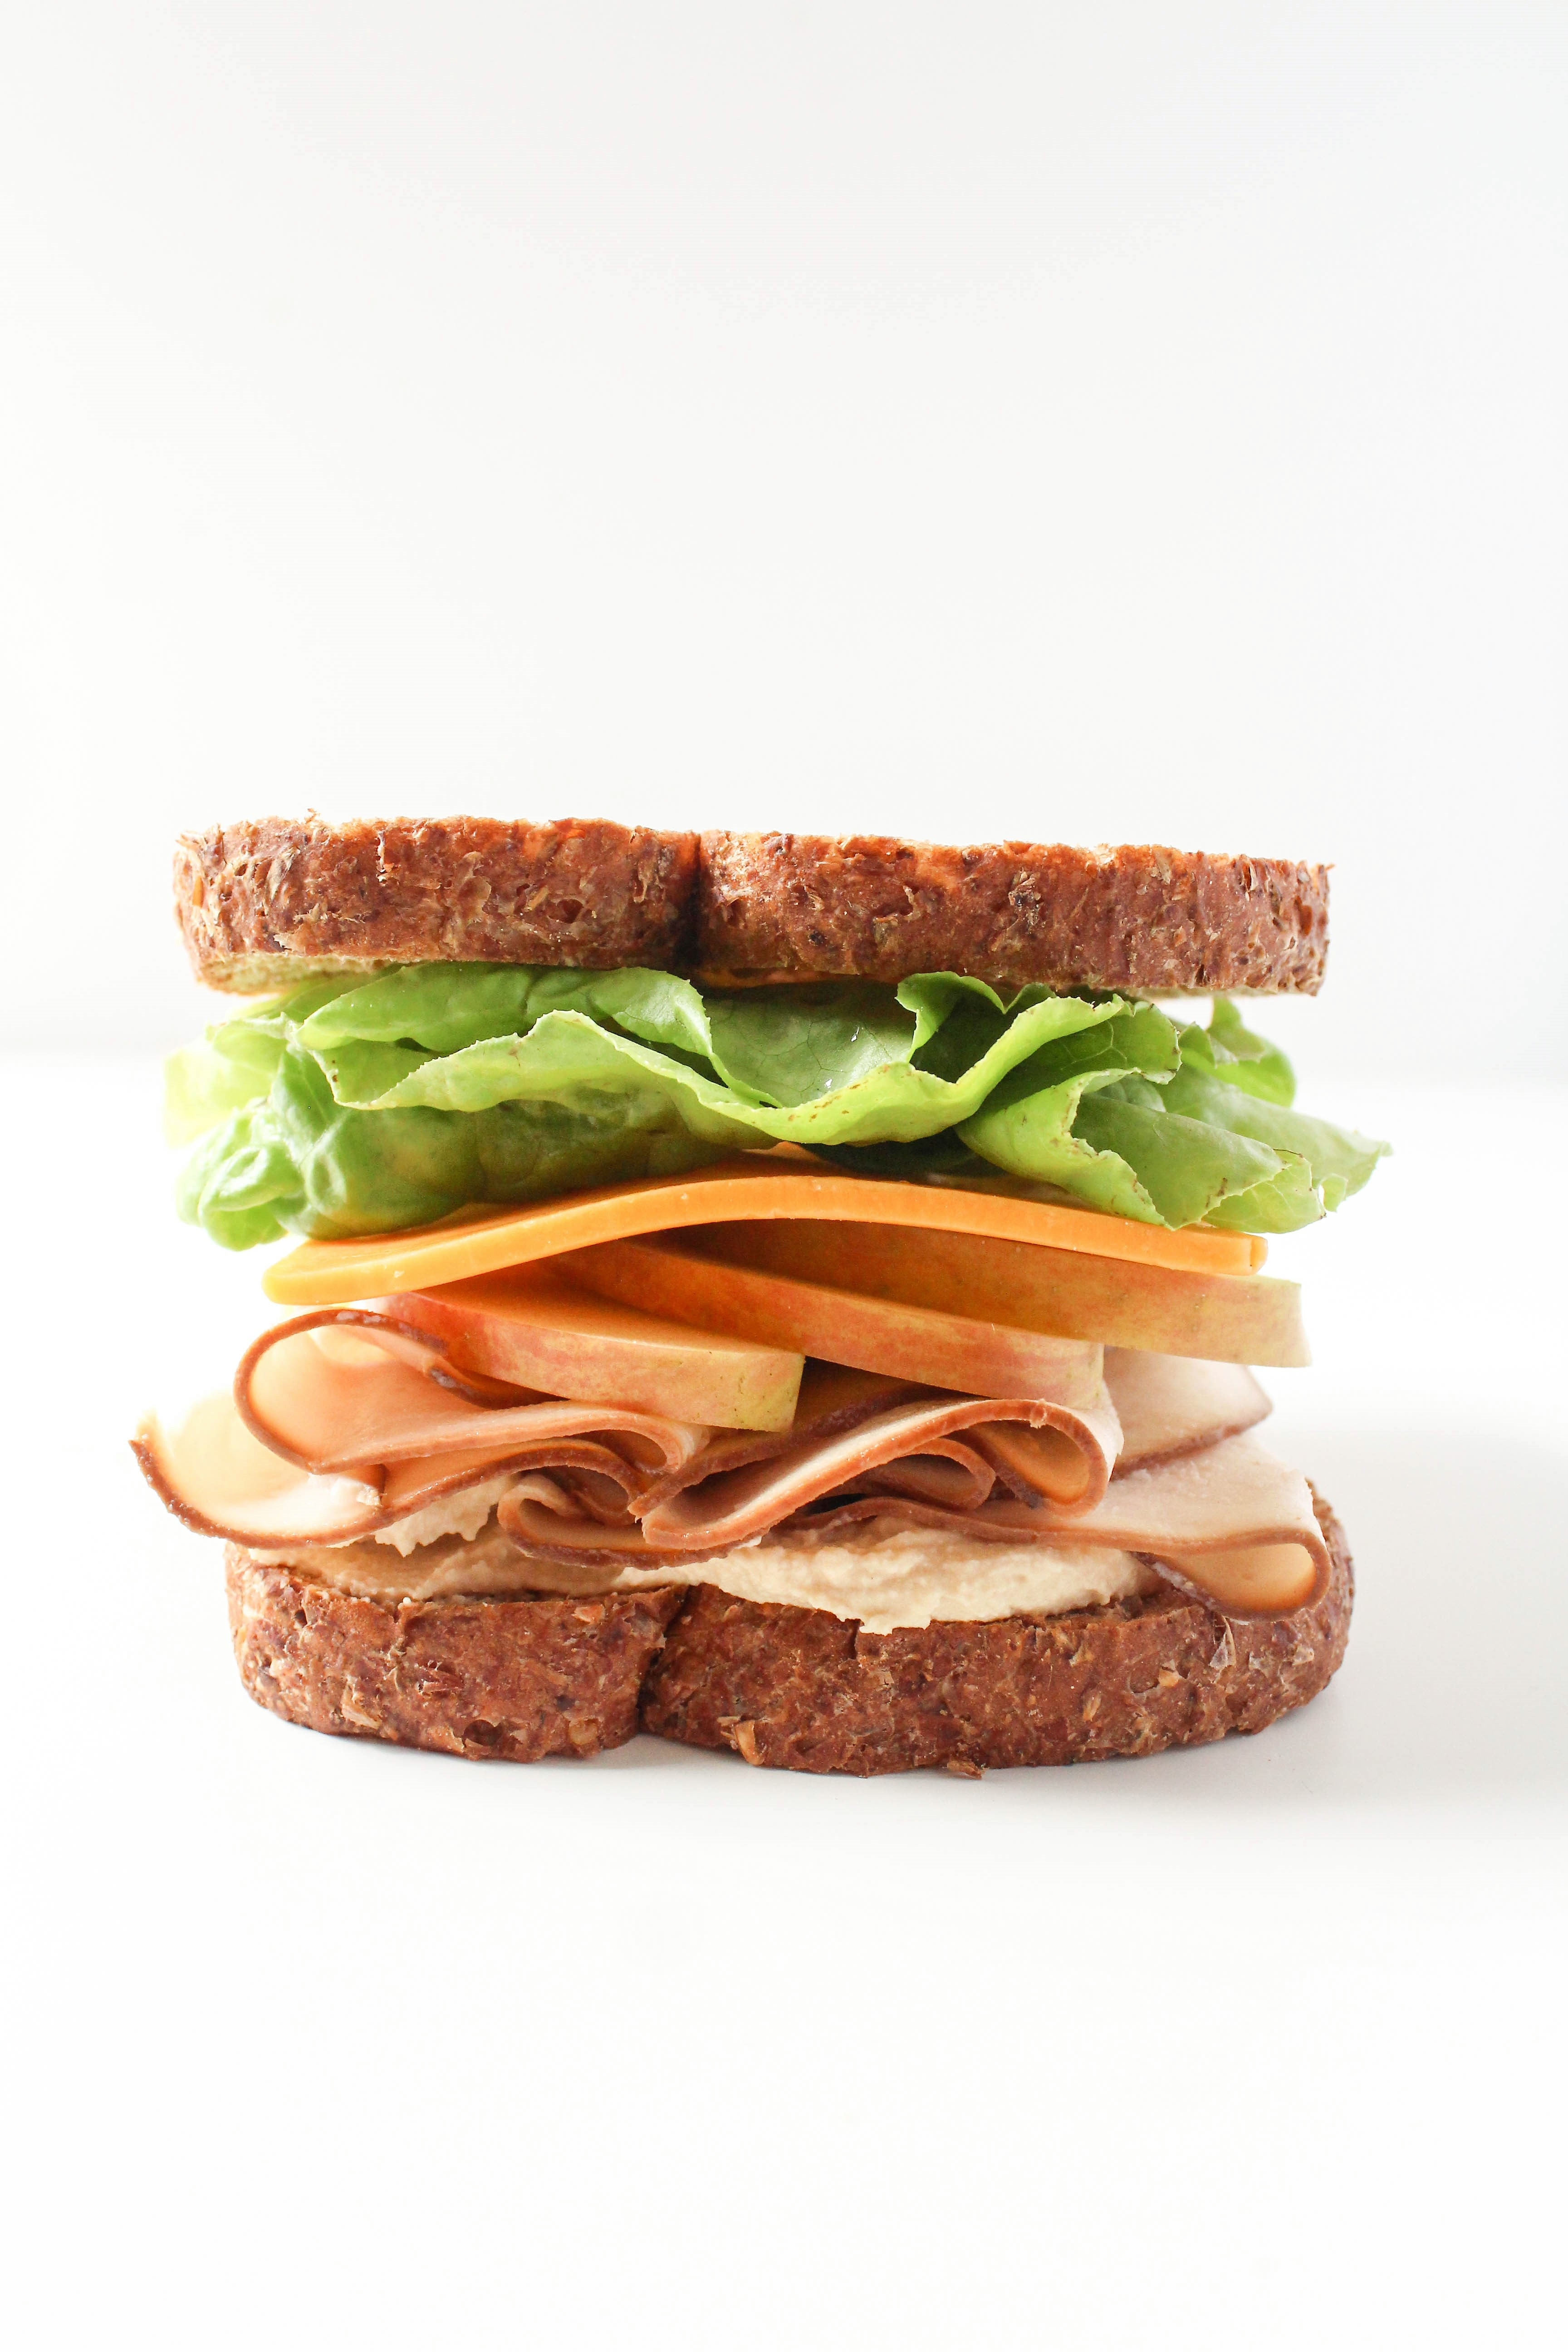 Mix Amp Match Healthy Sandwich Recipes Fannetastic Food Registered Dietitian Blog Recipes